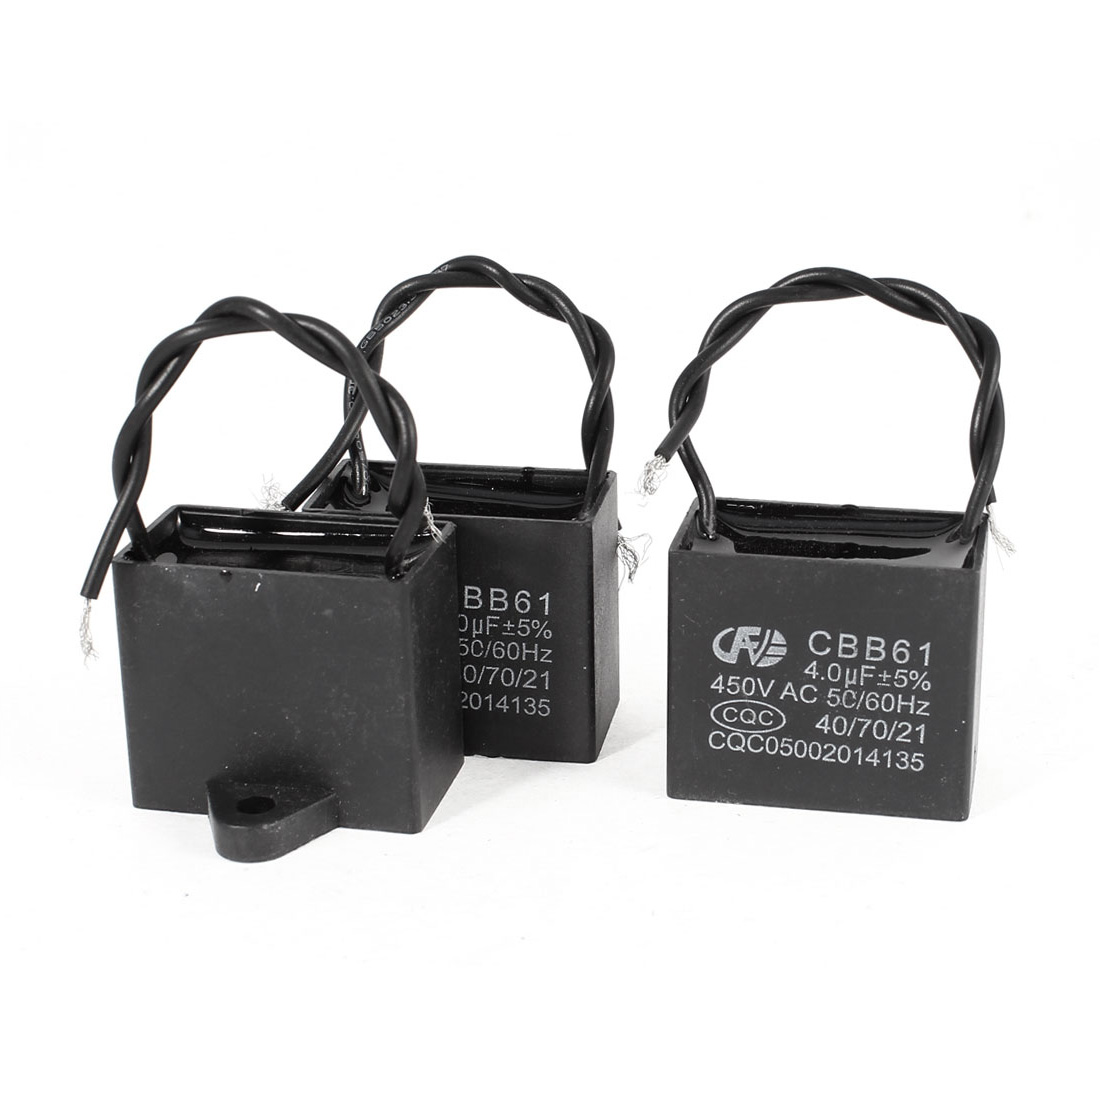 3 PCS CBB61 450V 4uF 50/60Hz Double Wire Leads Rectangle Non Polar AC Motor Run Capacitor